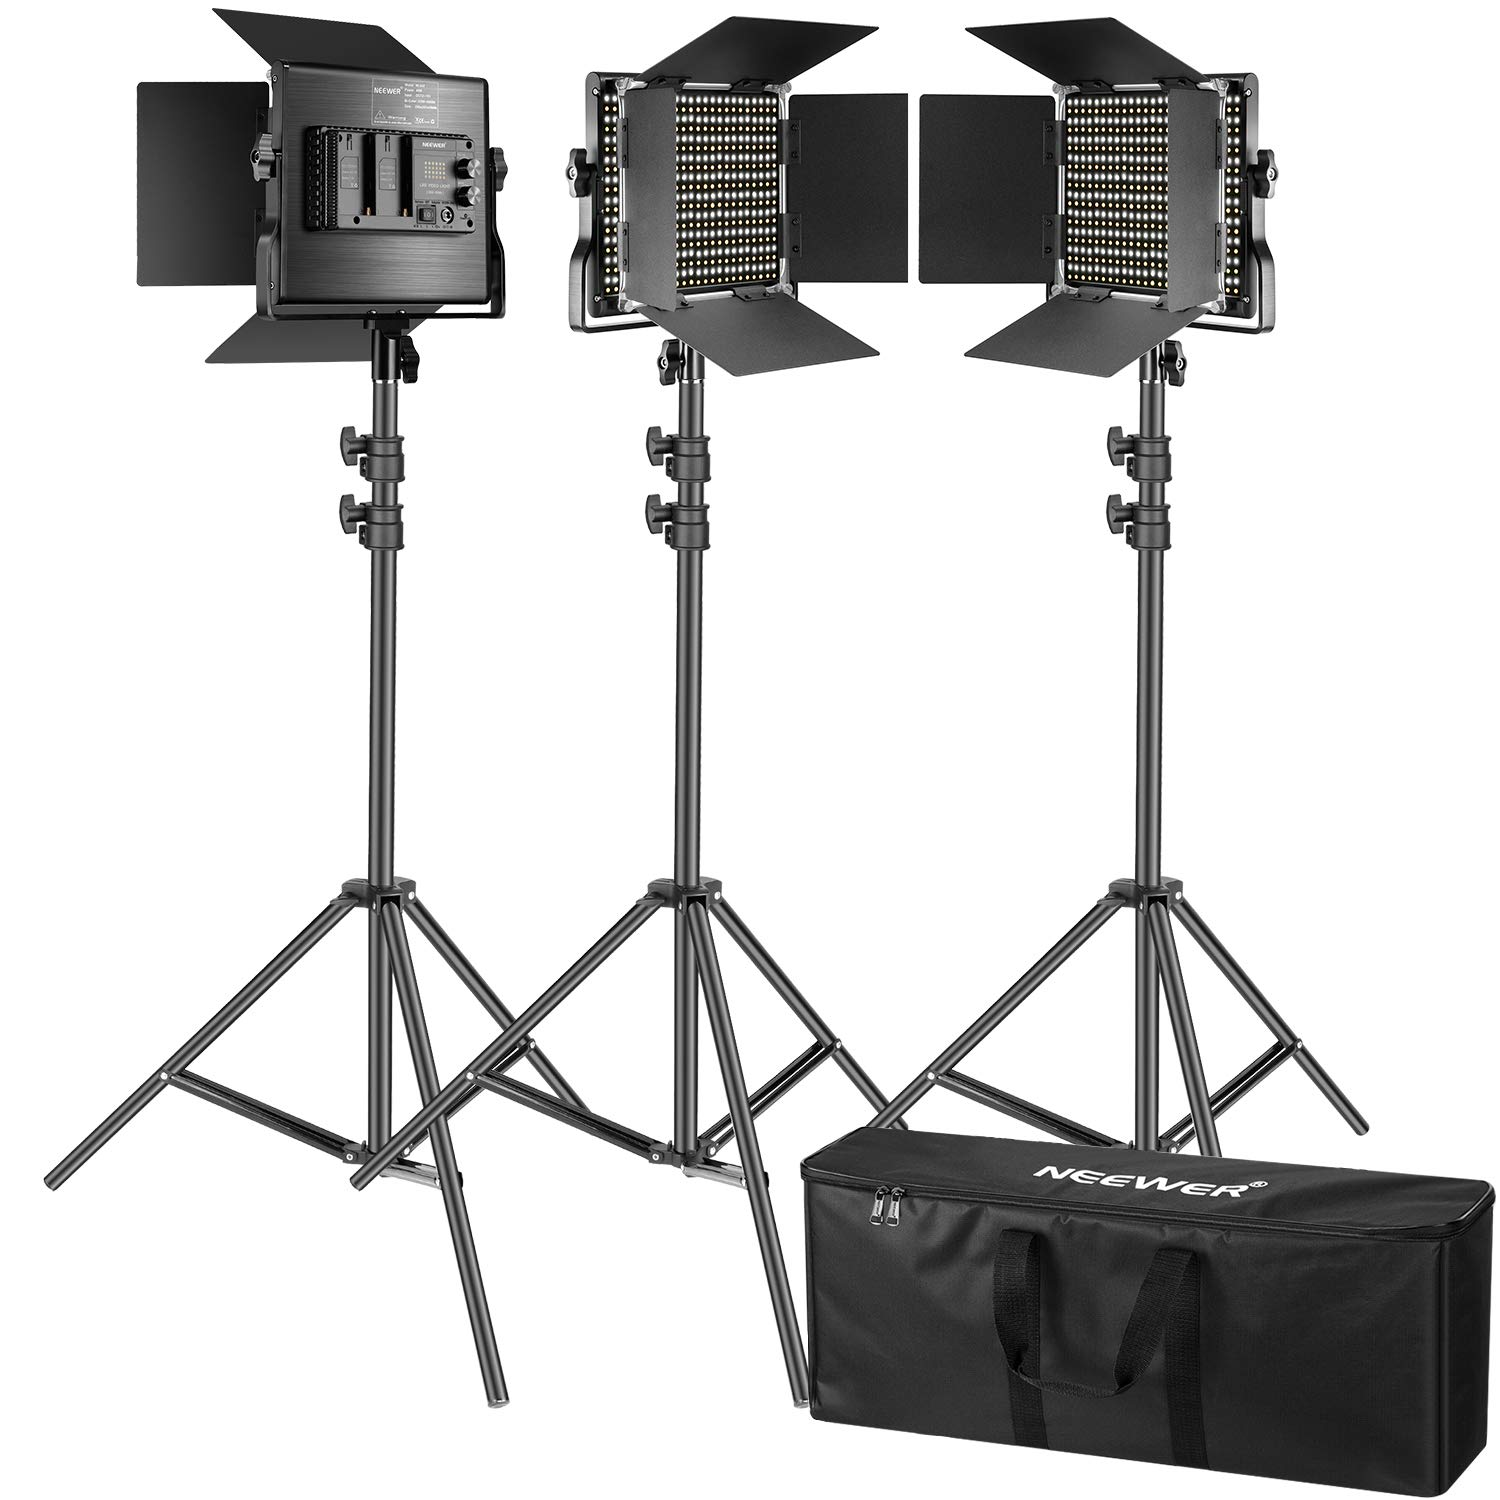 Neewer 3 Packs 660 LED Video Light Photography Lighting Kit with Stand: Dimmable 3200-5600K CRI96+ LED Panel, Premium 200cm Light Stand for Studio YouTube Video Outdoor Shooting by Neewer (Image #1)